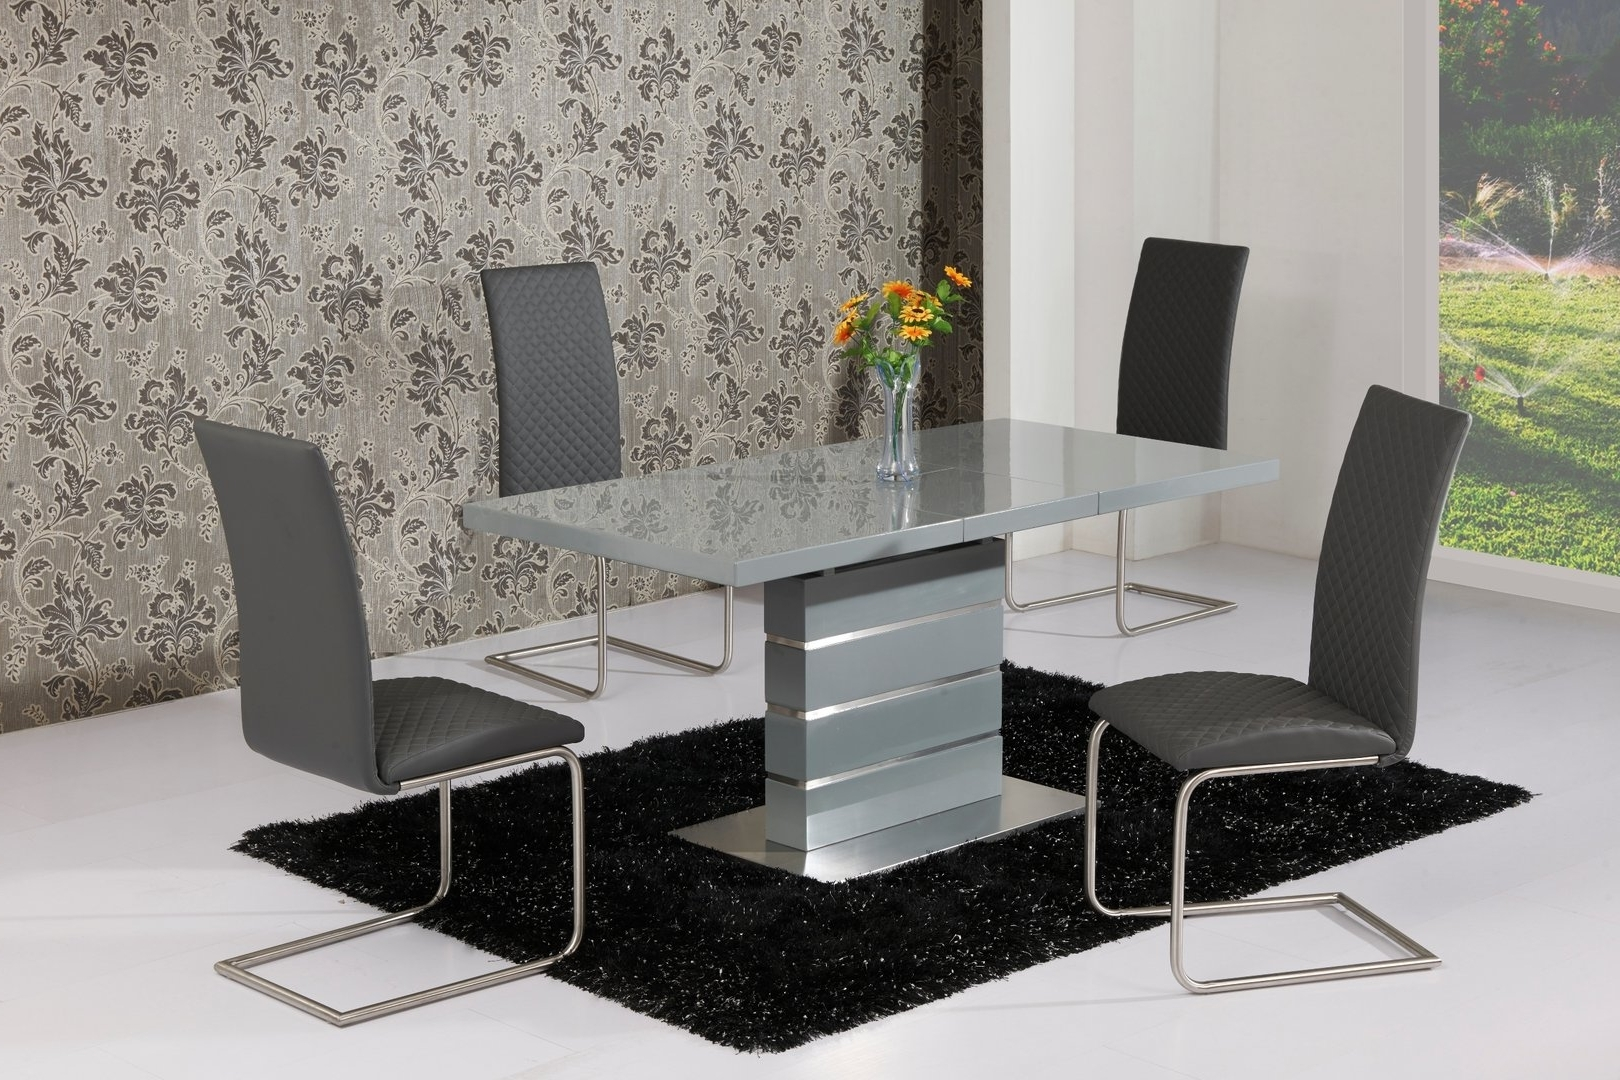 Extending Grey High Gloss Dining Table And 4 Grey Chairs In Current Gloss Dining Tables Sets (View 7 of 25)